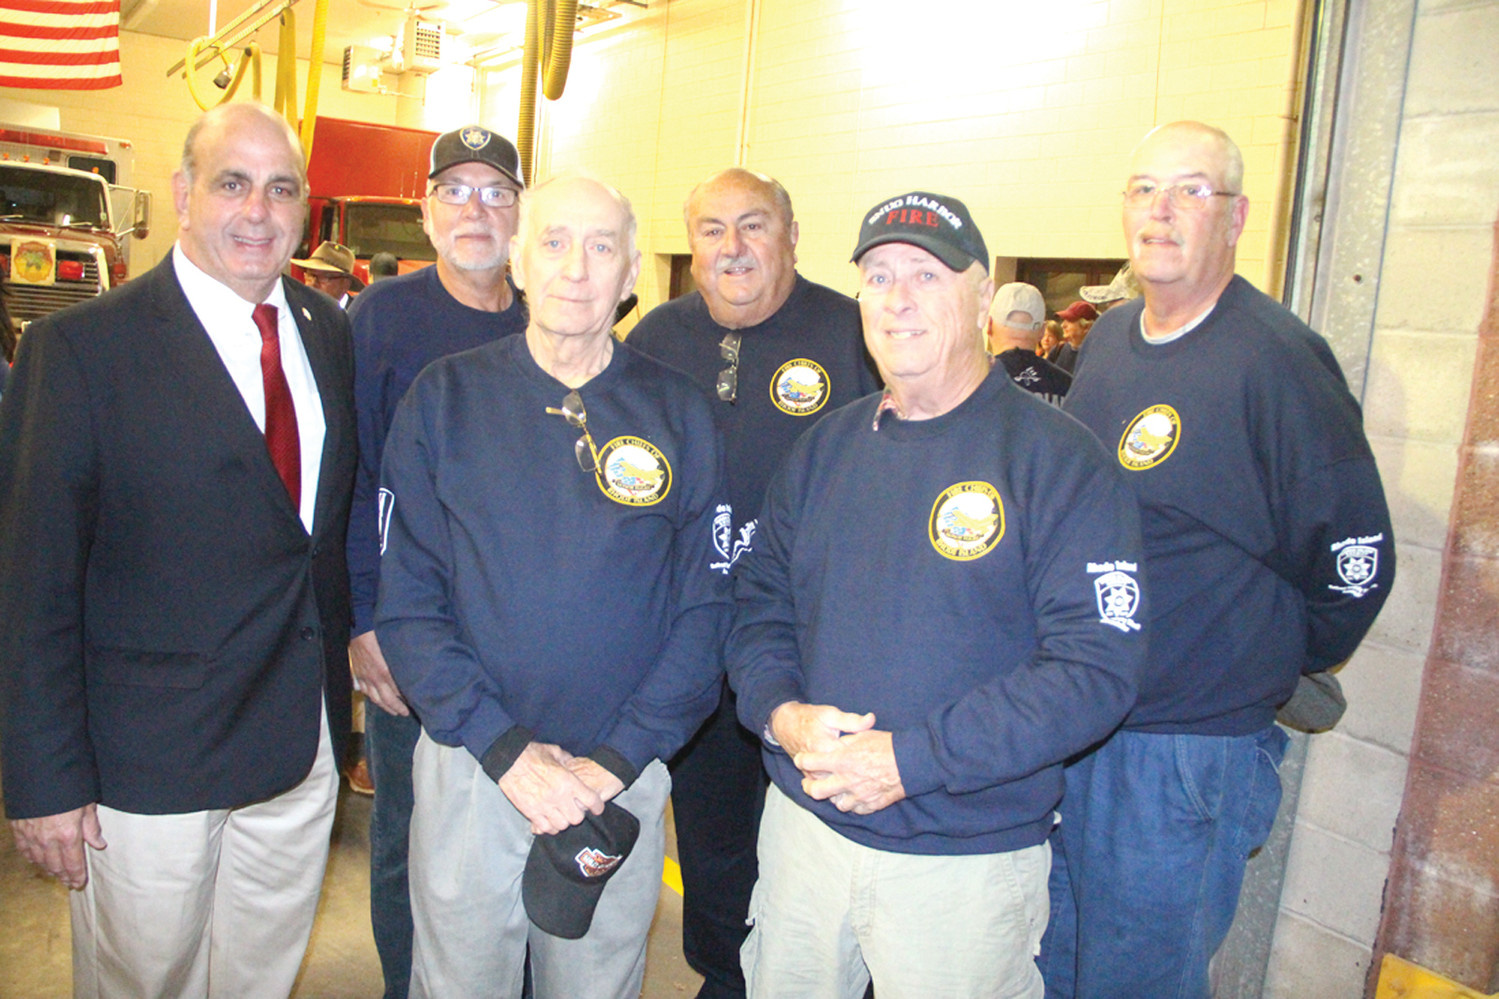 EARLY BIRDS:  Mayor Joseph Solomon joined members of the Rhode Island Retired Deputy Sheriffs Association at 5 a.m. Saturday at Warwick Fire Station 8. The association sponsored Saturday's Honor Flight to Washington DC.